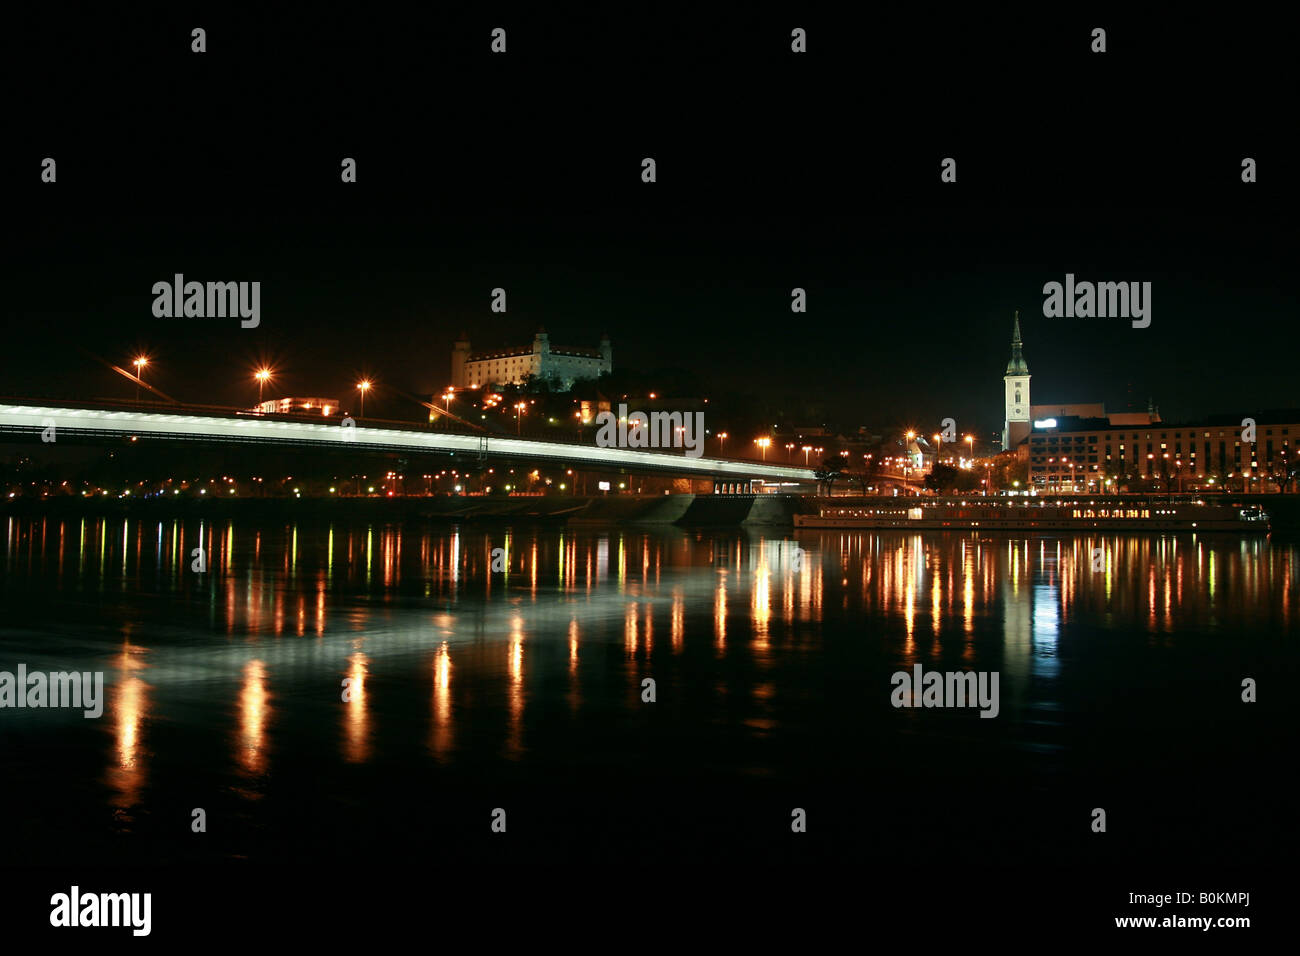 Bratislava at night, view from Petrzalka district - Stock Image